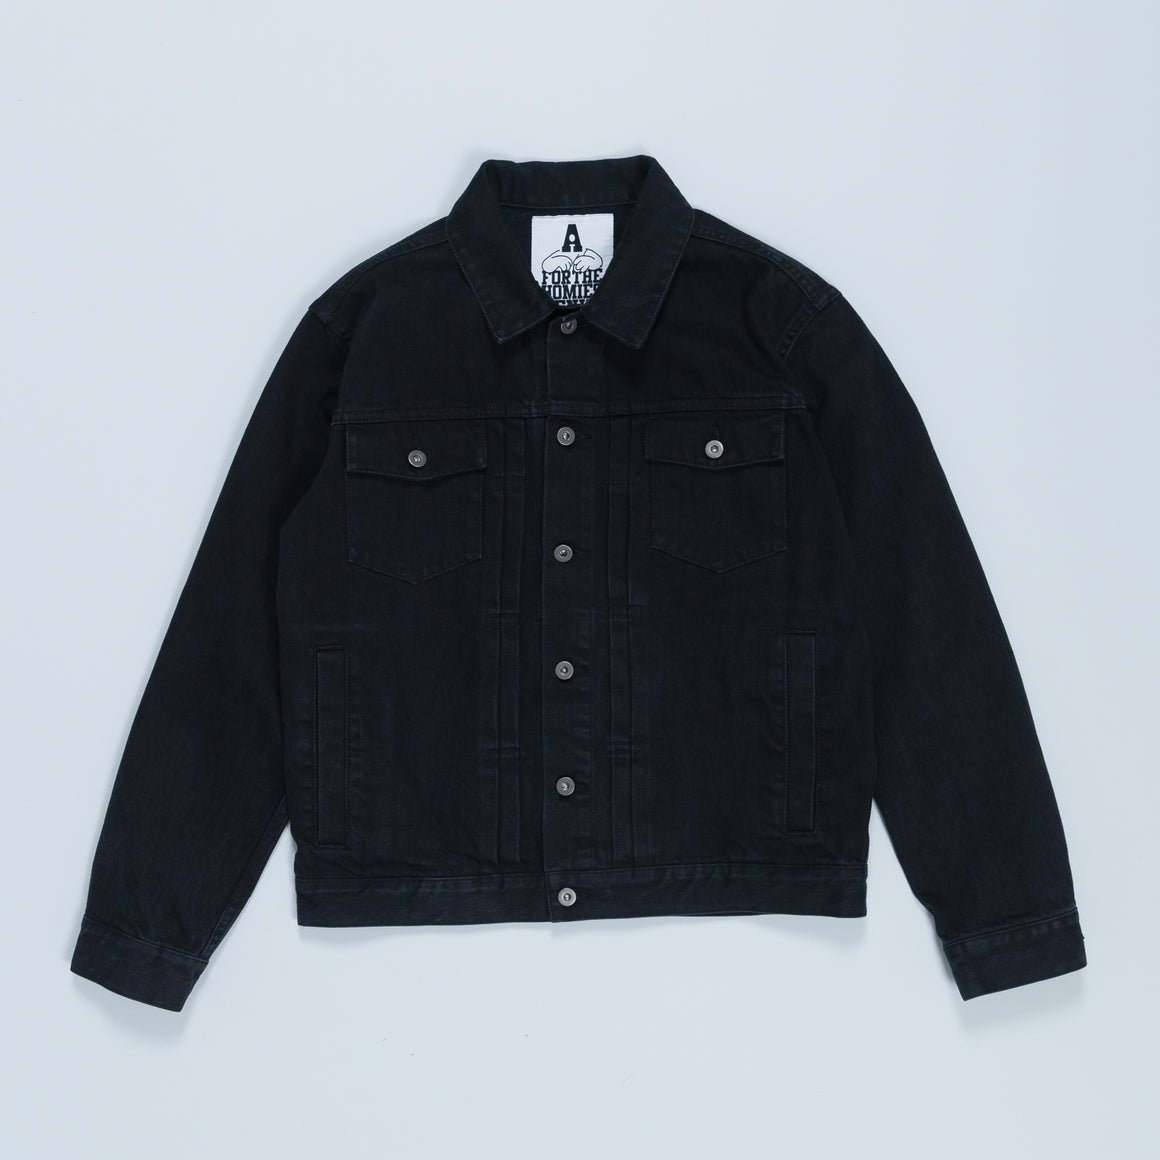 G Wagon Denim Jacket - Black - Up There